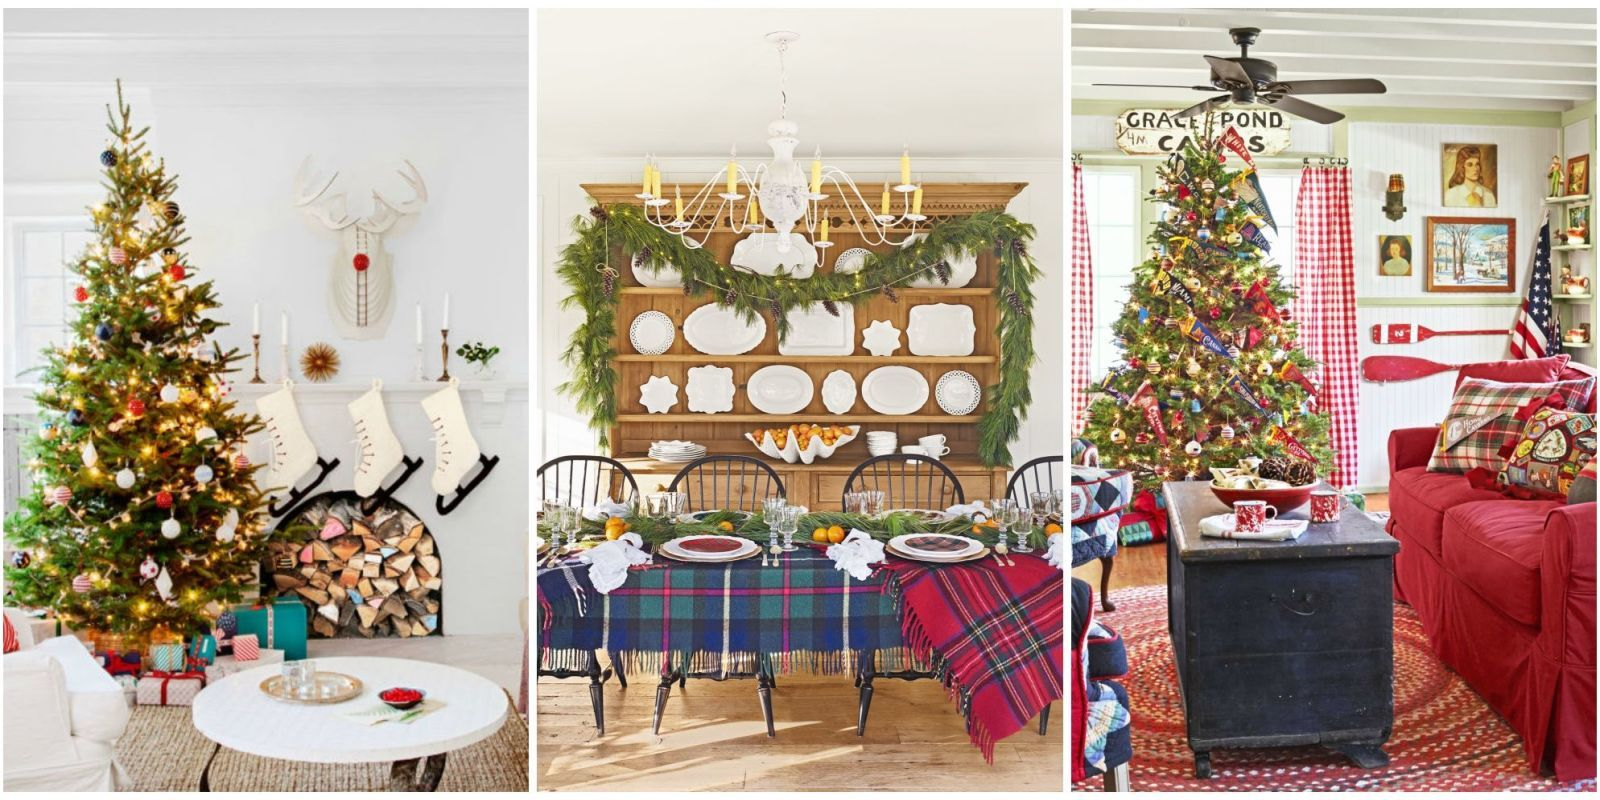 Get inspired to fill your home with holiday cheer by browsing through our favorite homes decorated for Christmas. Plus check out our favorite houses in ... & 30 Best Christmas Home Tours - Houses Decorated for Christmas